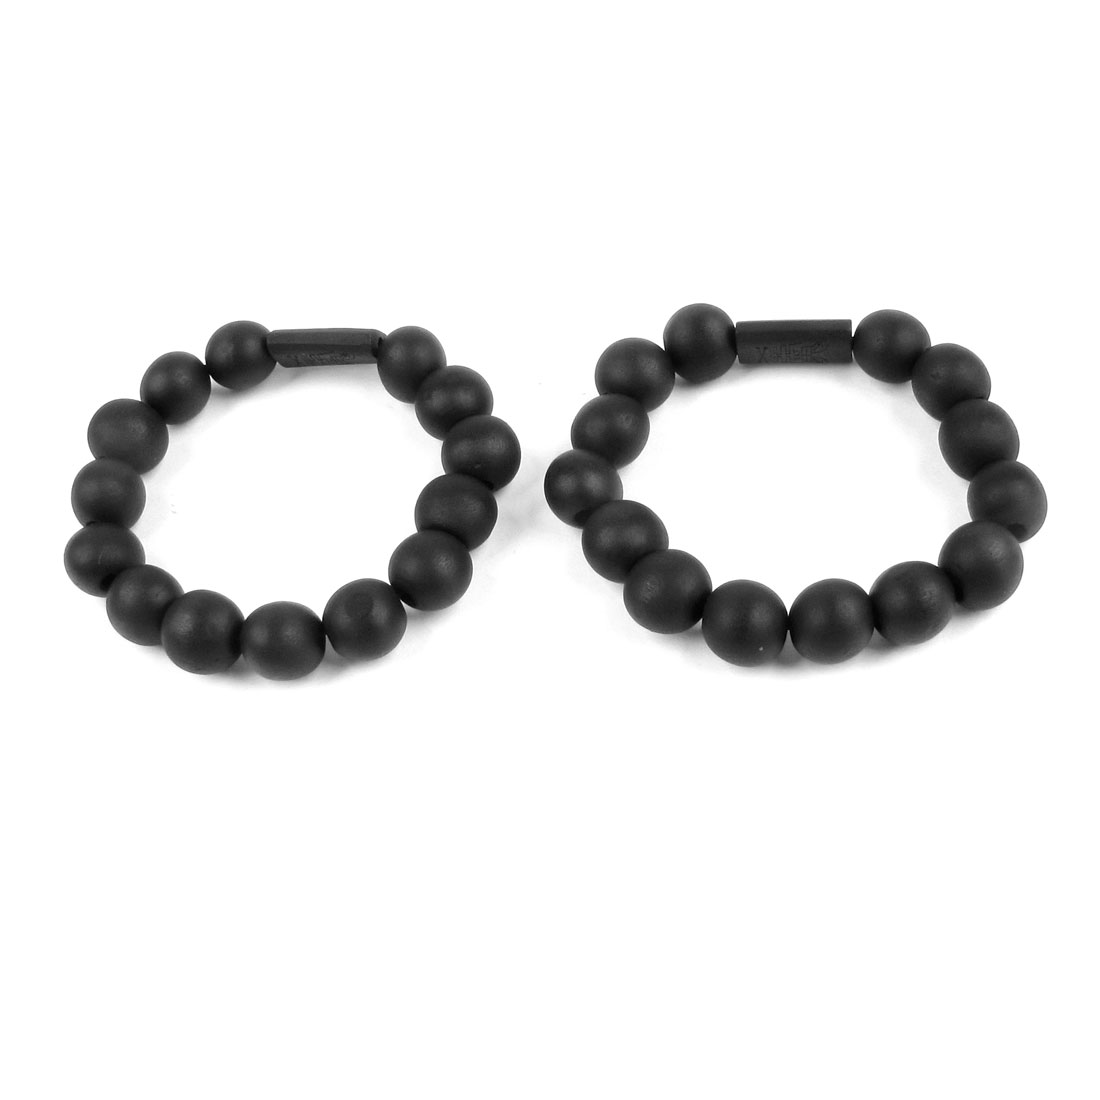 Black 14 Wooden Round Beads Stretch Wrist Bracelet 2pcs